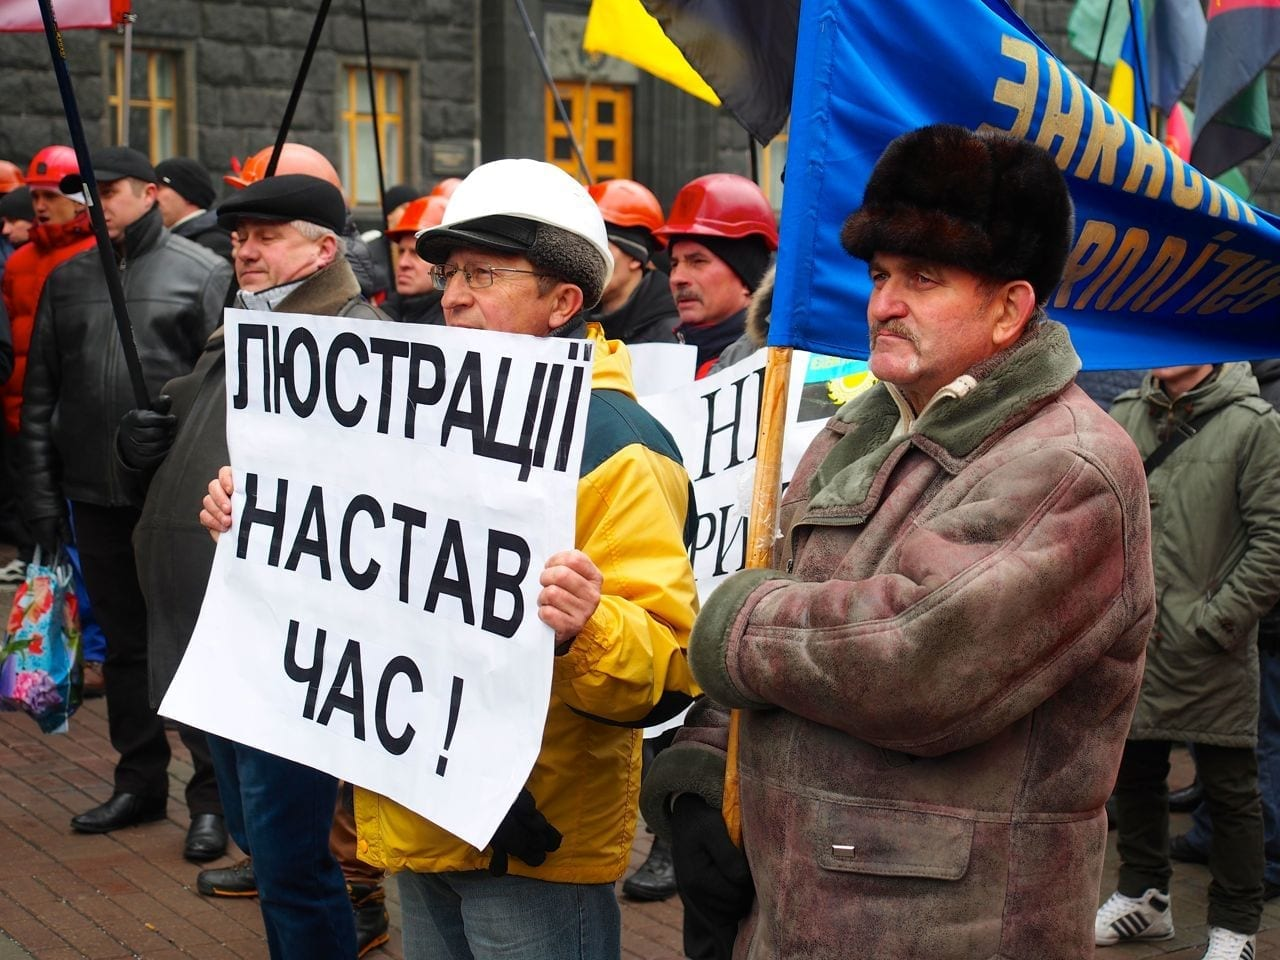 Ukraine Labor Initiative a Hub for Worker Rights